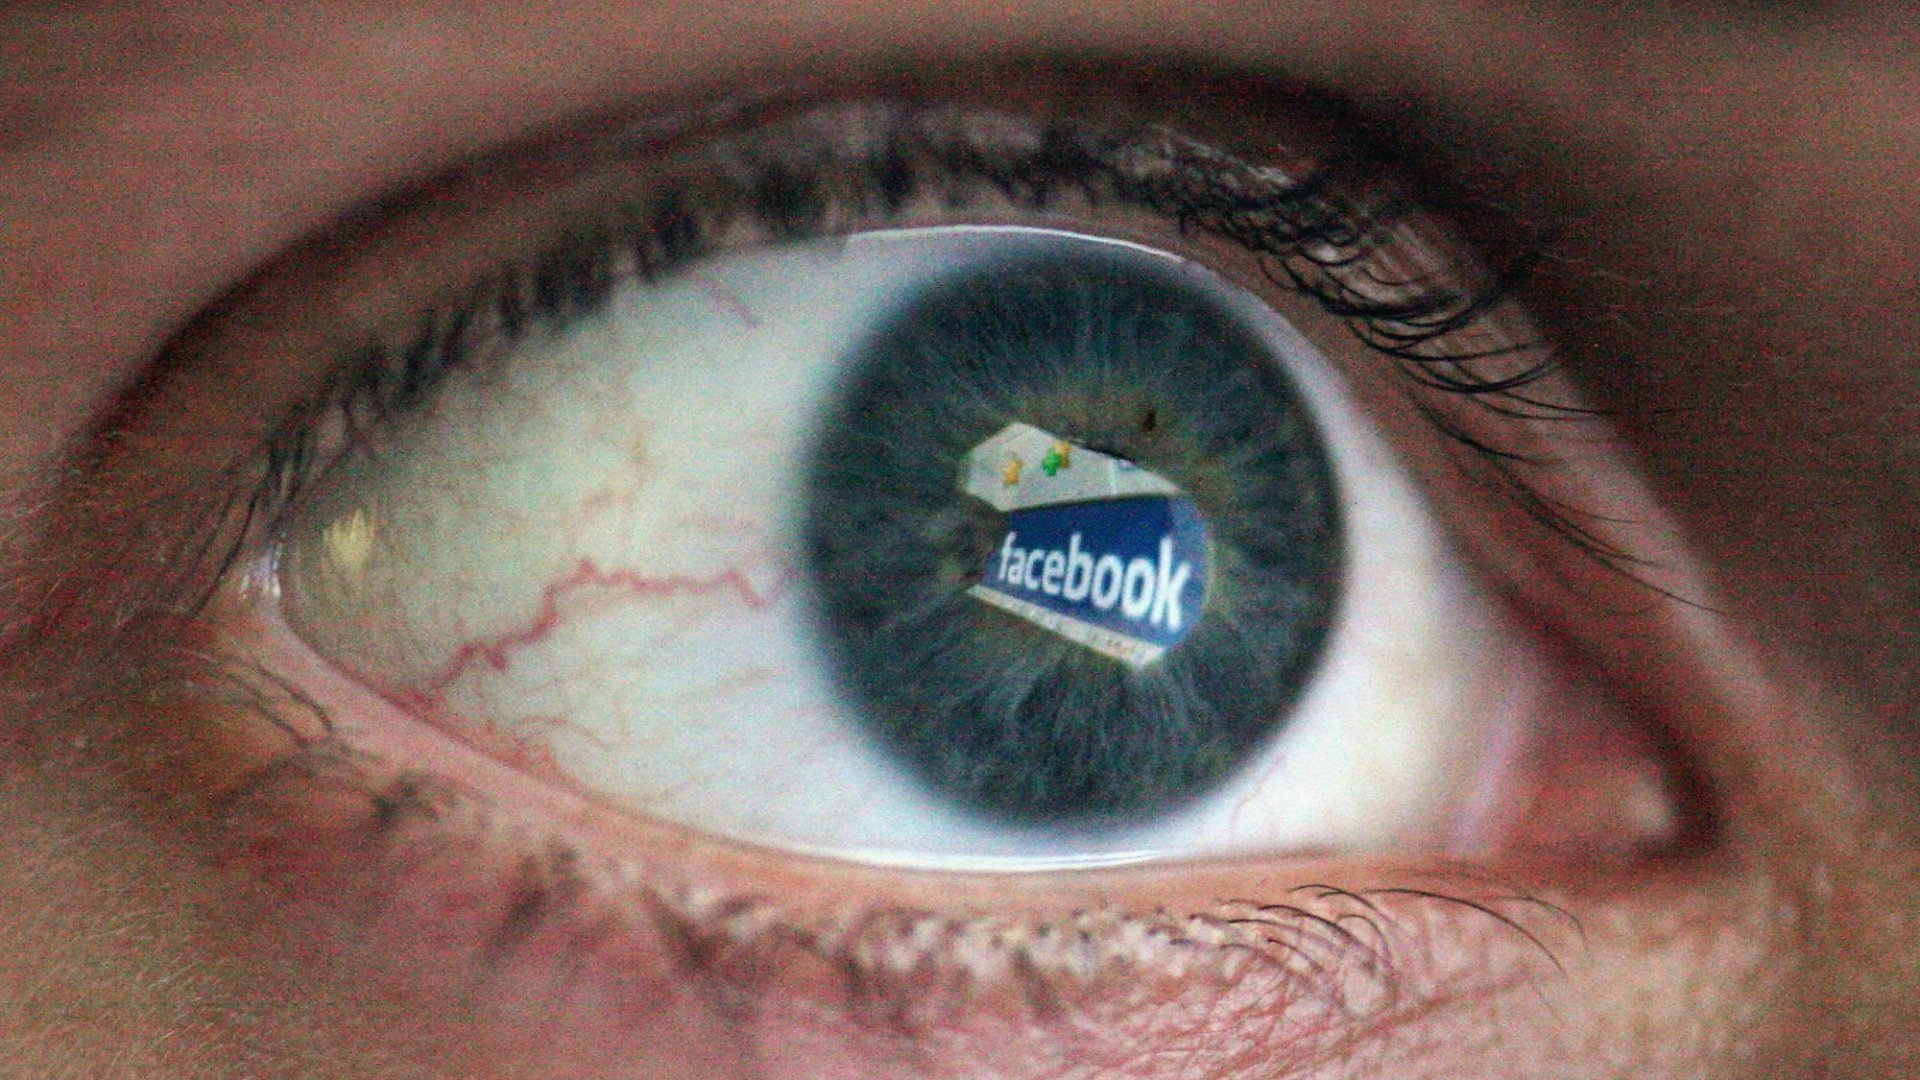 In a Shocking Announcement, Facebook Reveals That Using Facebook May Be Bad for Your Mental Health